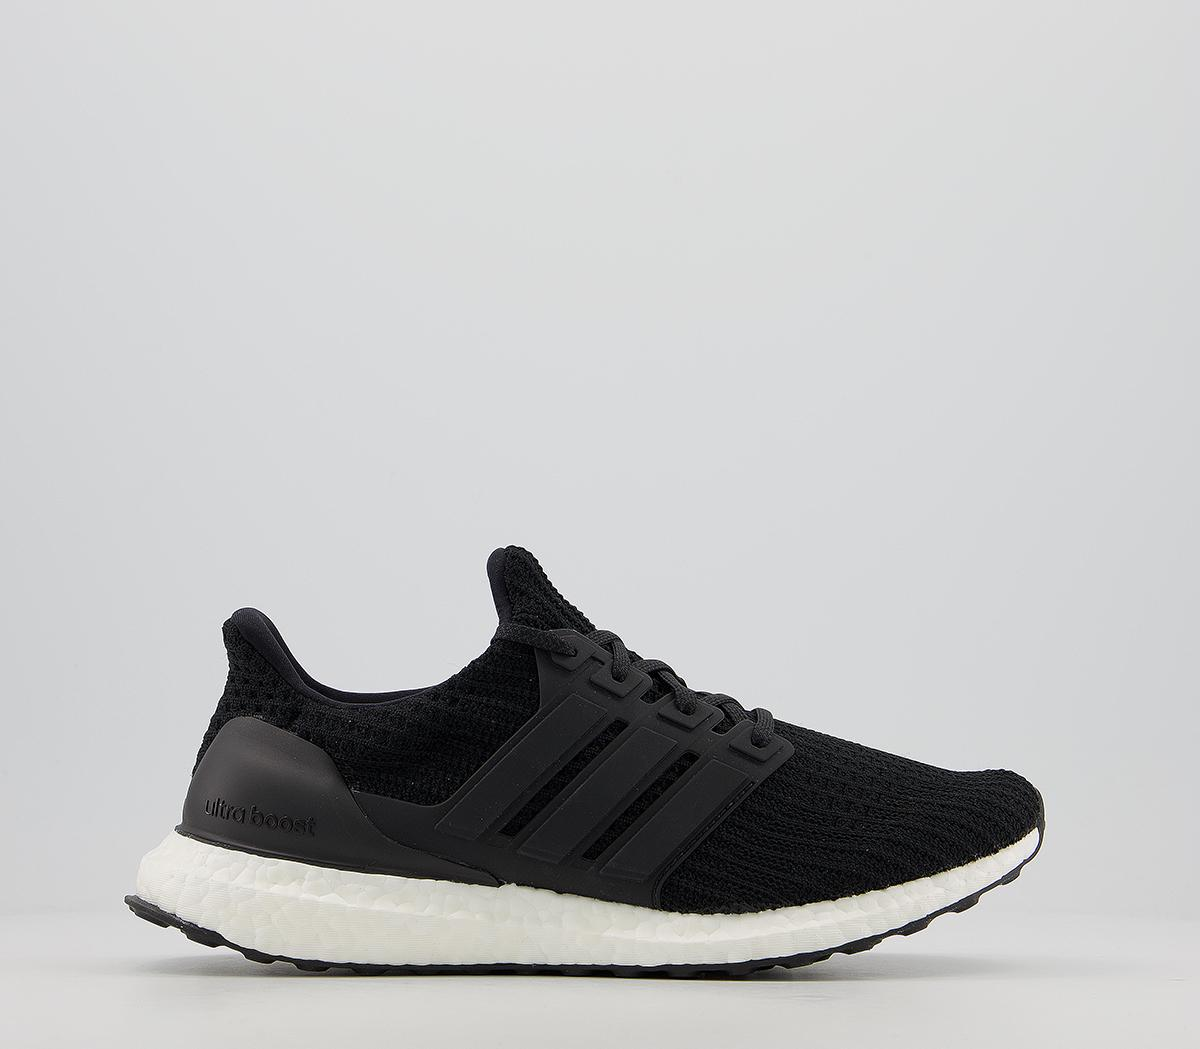 mens adidas ultra boost trainers cheap online